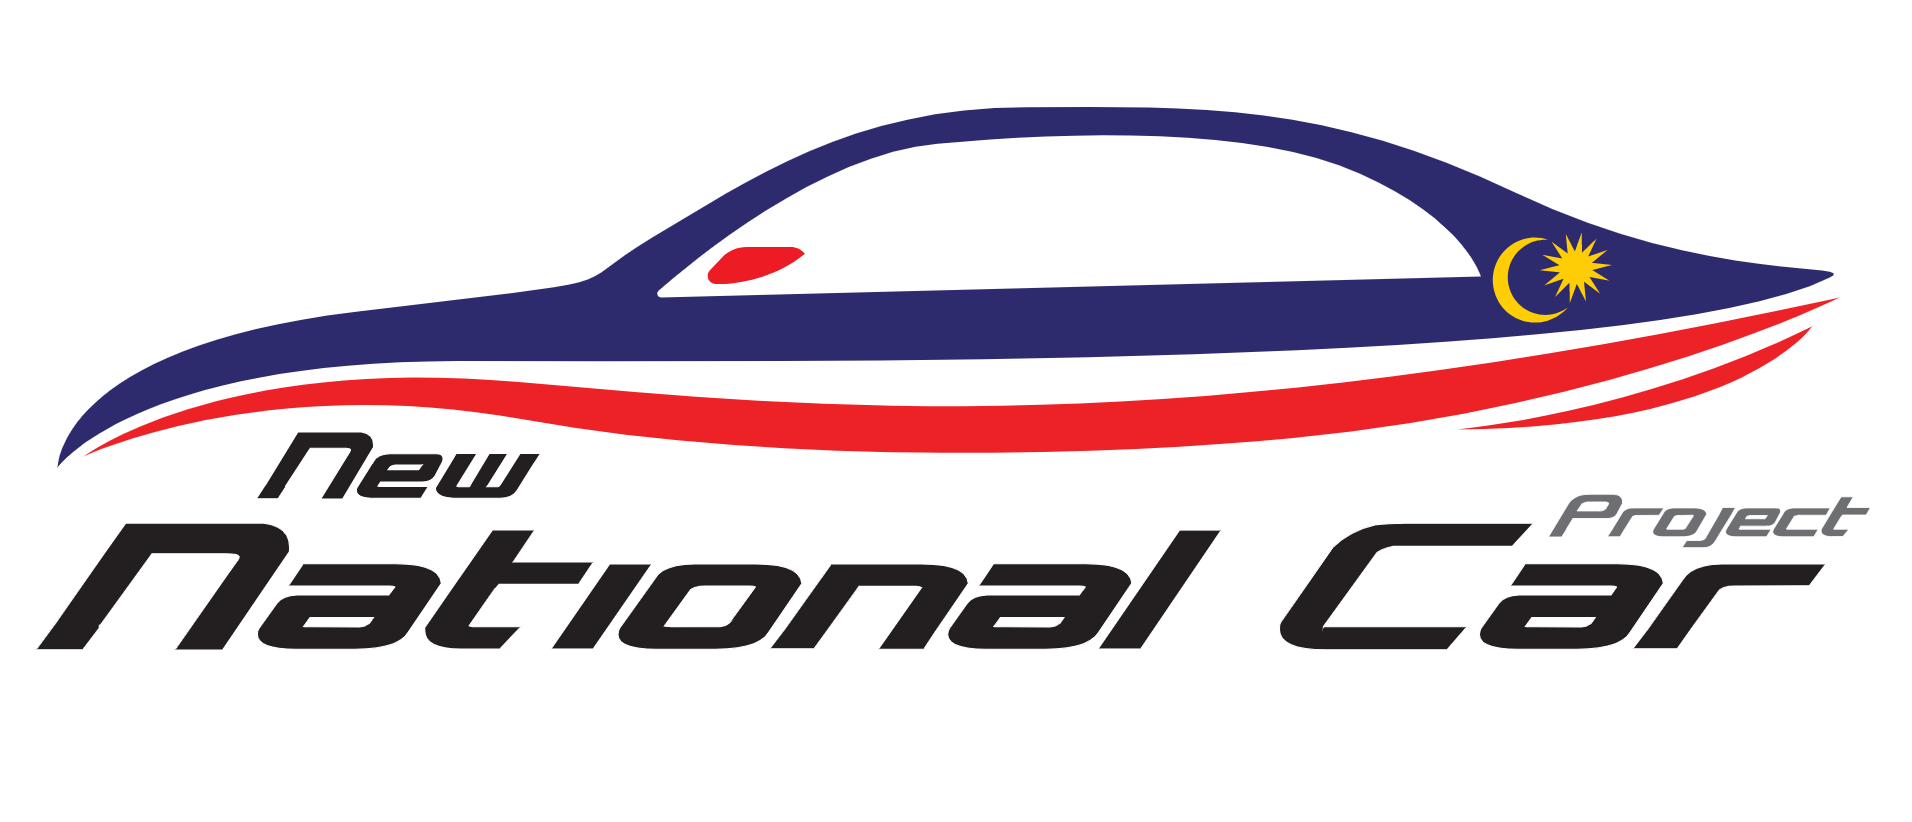 DreamEdge and Daihatsu To Spearhead Third National Car Project